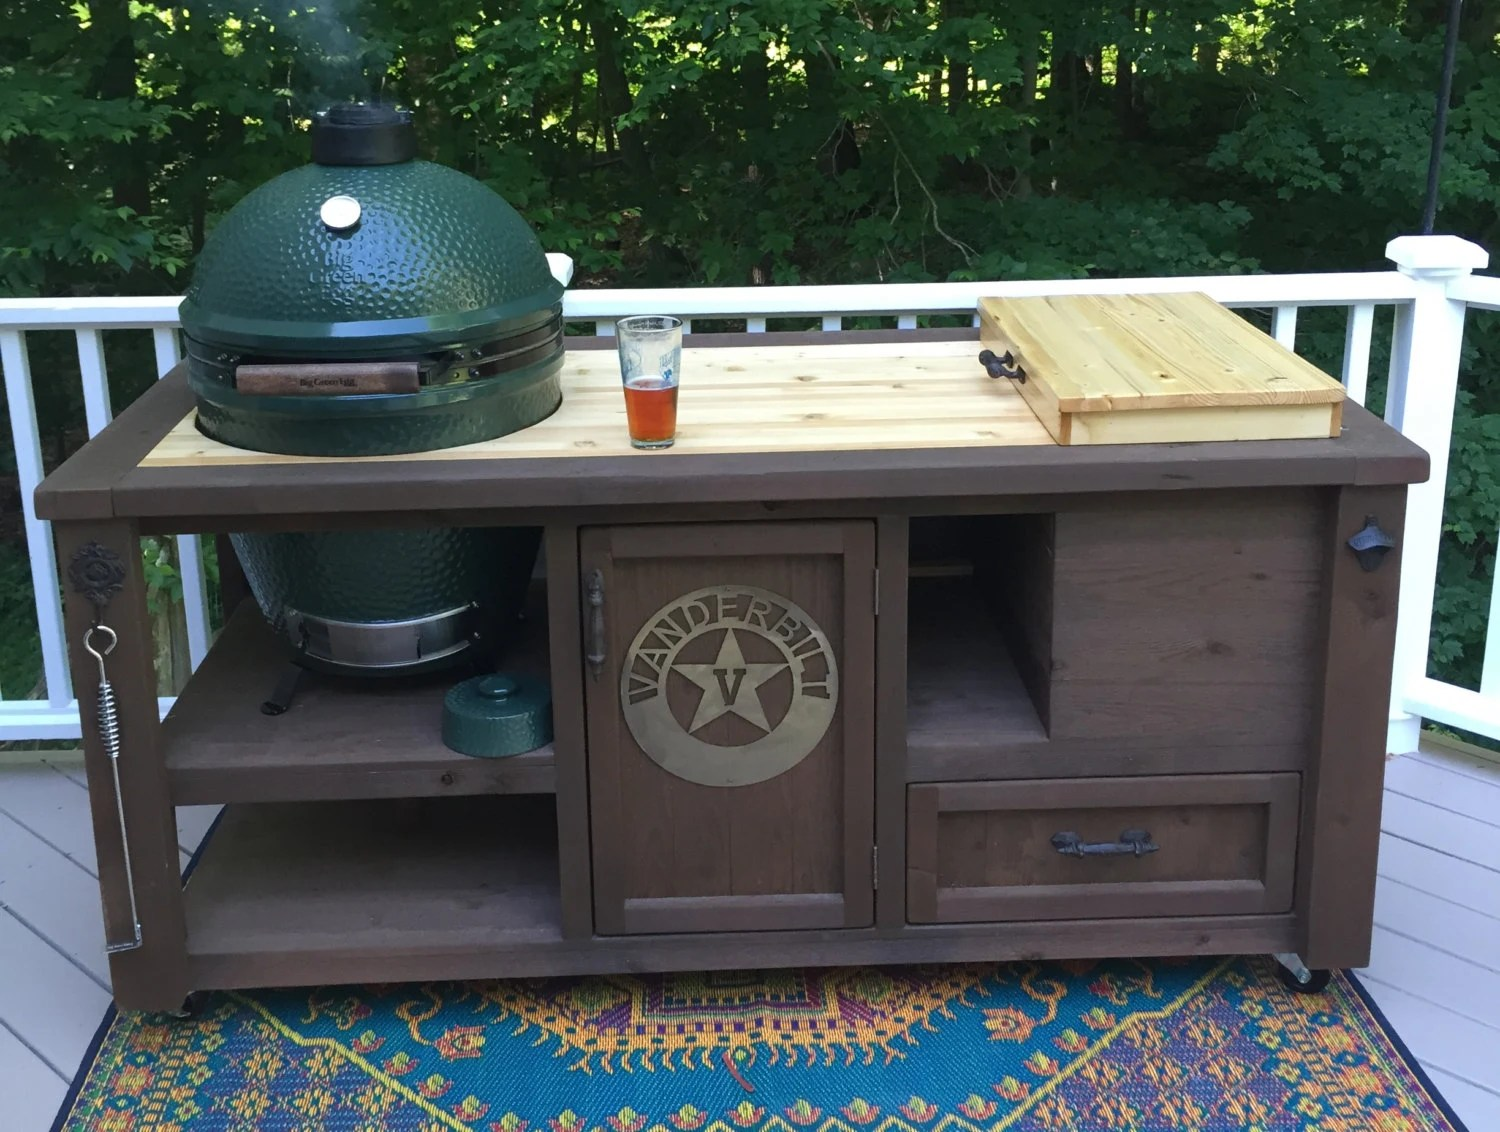 Big Green Egg Outdoor Küche Custom Grill Tables For Kamado Joe Big Green Egg Primo And Dual Or Gas Grill Built In Cooler And Optional Butcher Block Top